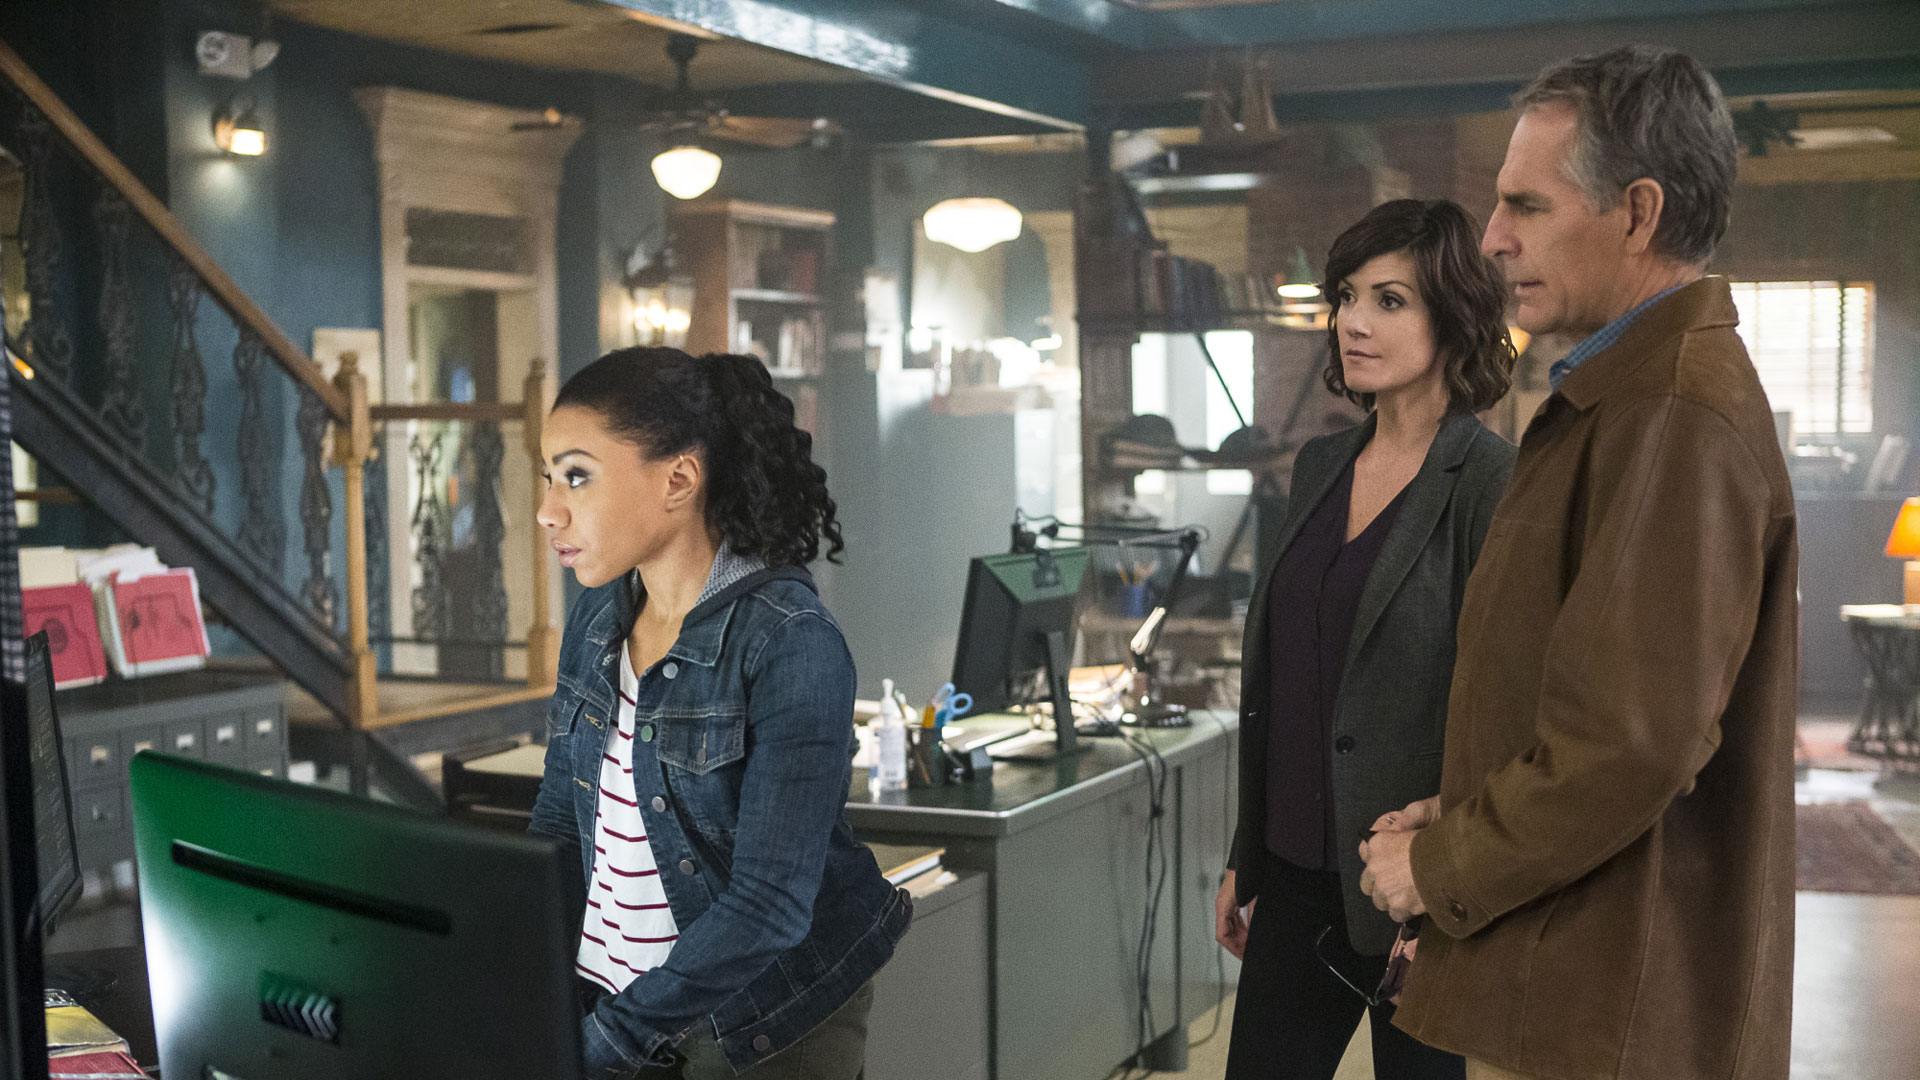 Zoe McLellan as Agent Meredith Brody, Shalita Grant as Sonja Percy, and Scott Bakula as Agent Dwayne Pride